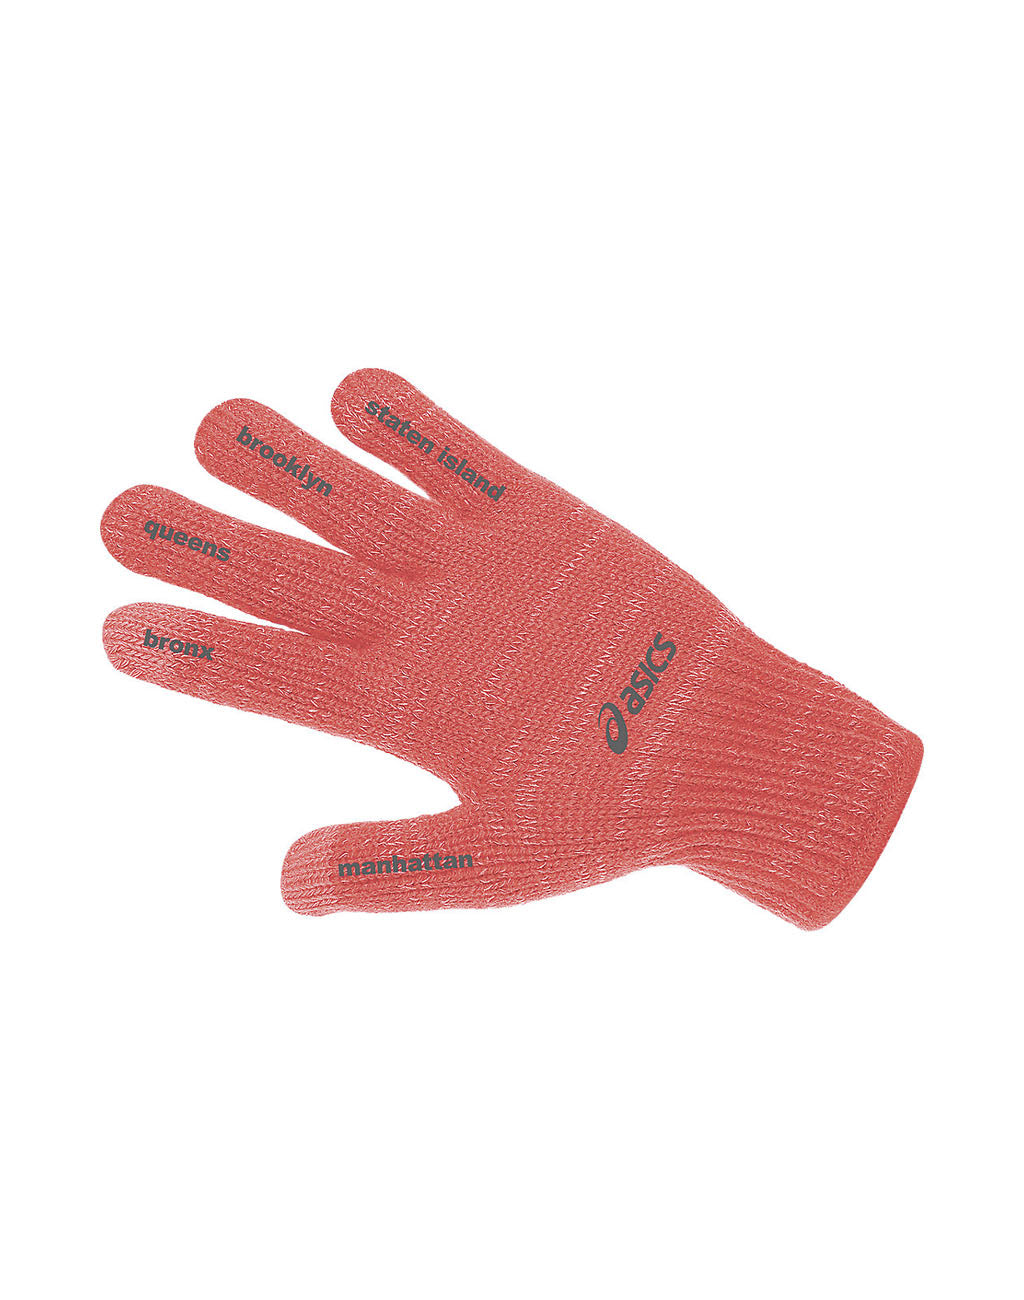 ASICS NYC Marathon Thermal Liner GloveS/M_master_image